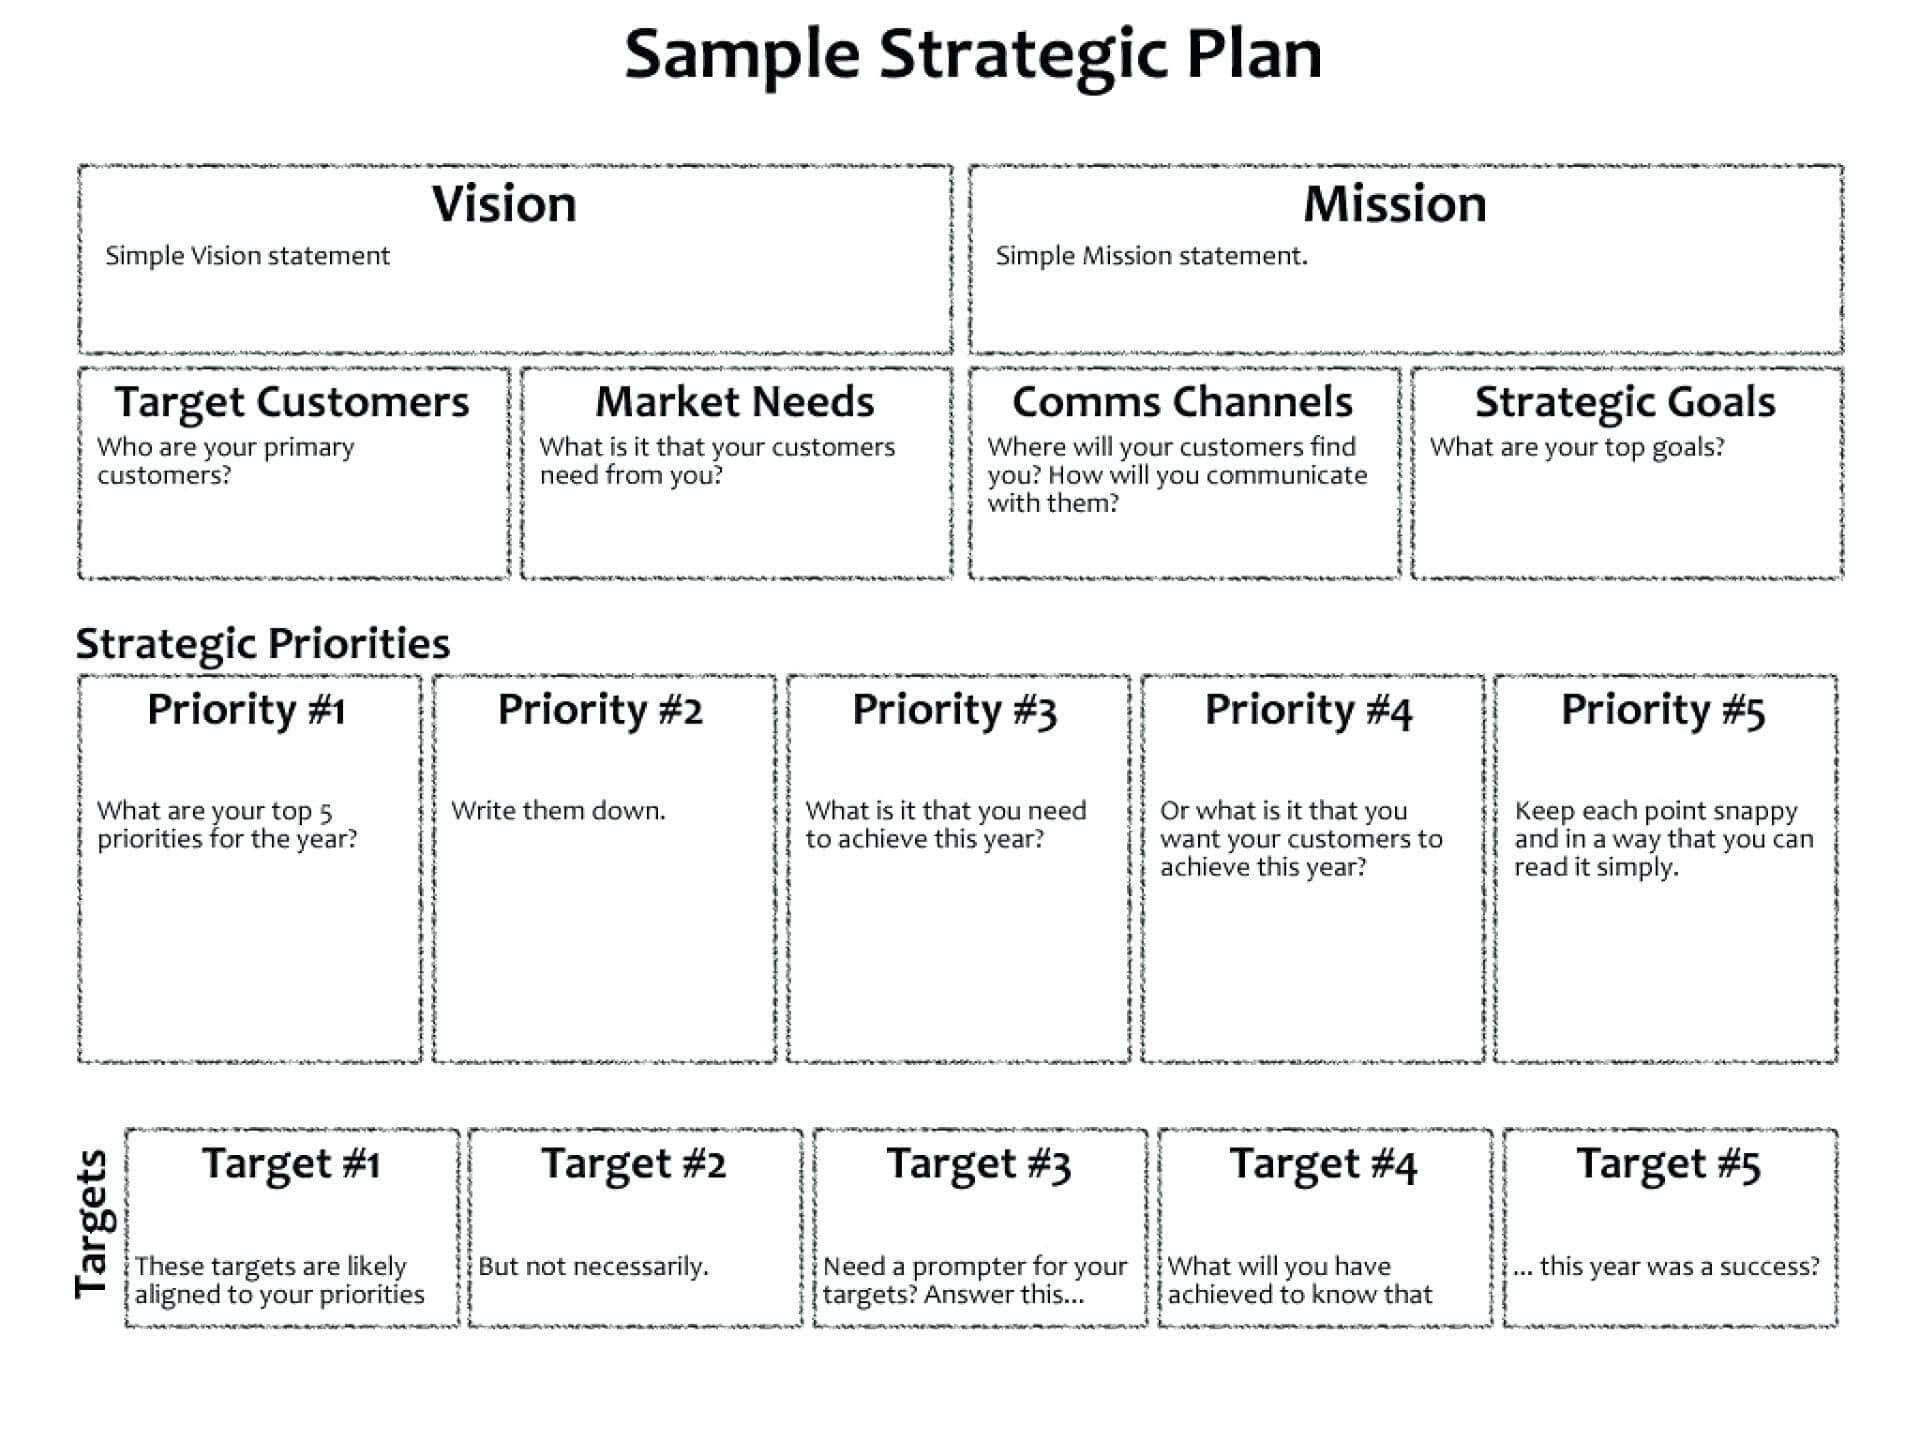 013 Year Business Plan Template Model And Awful Incredible 5 Regarding 5 Year Business Plan Template